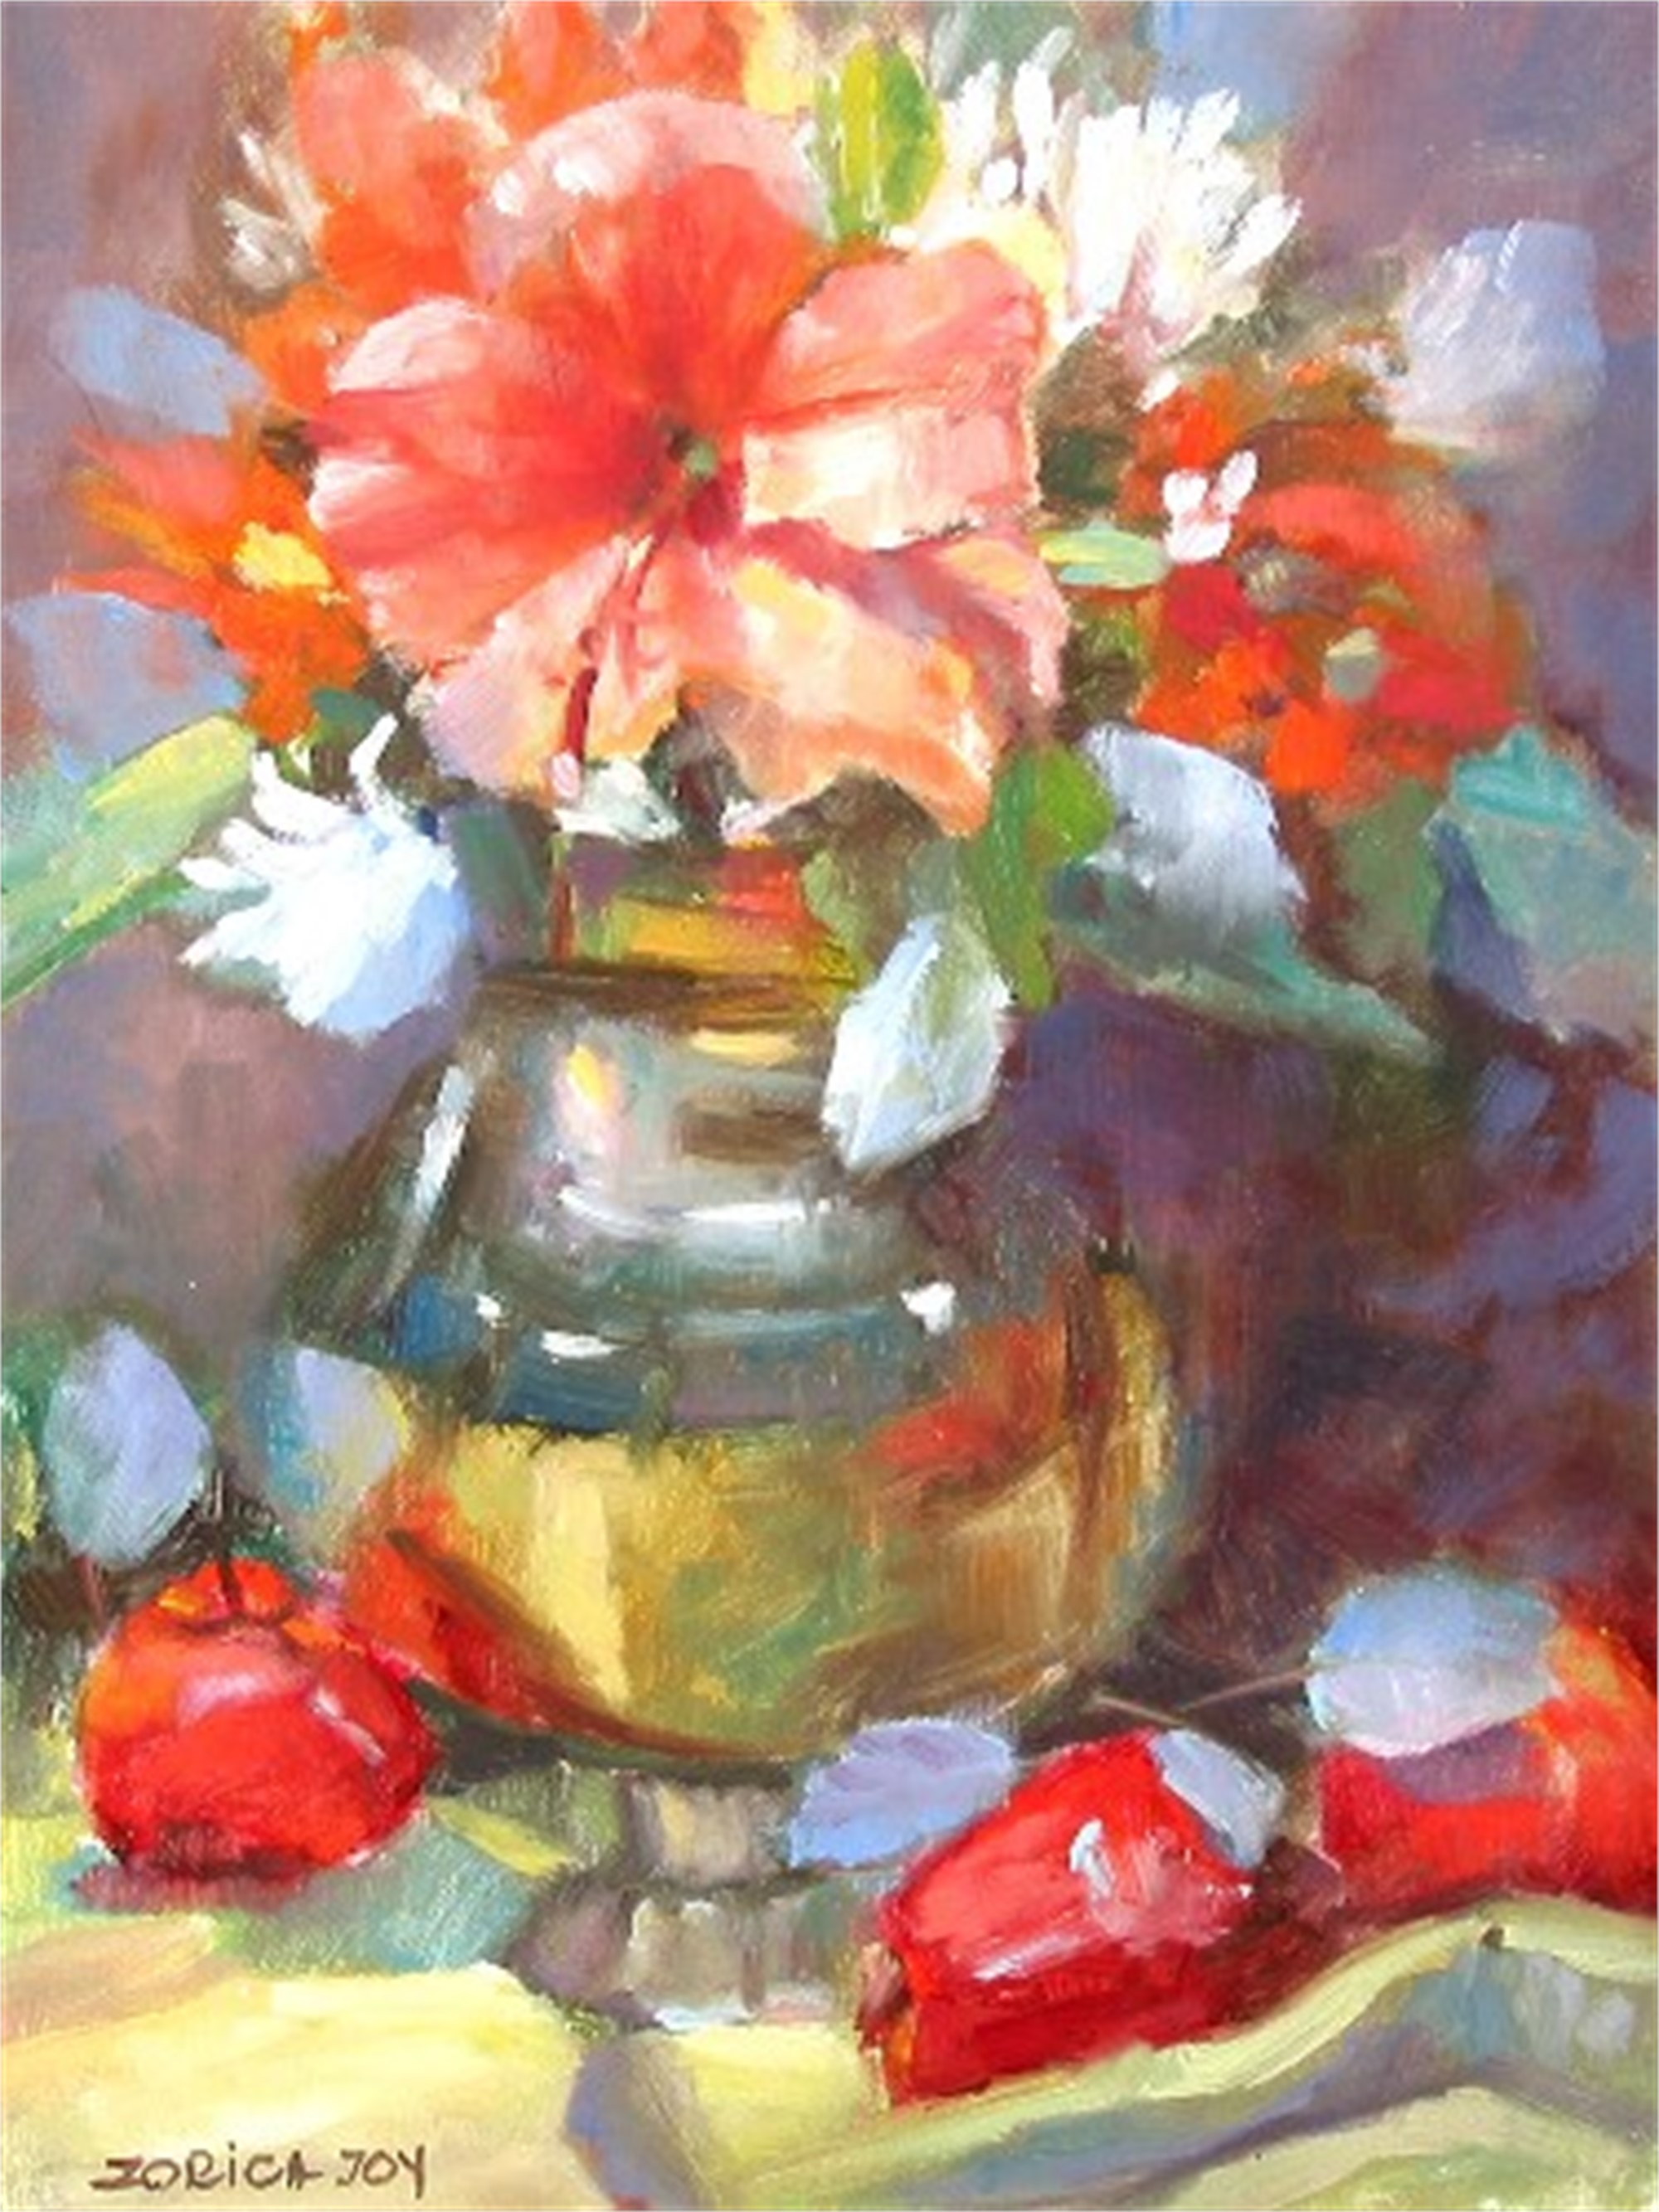 STILL LIFE WITH APPLES by JOY